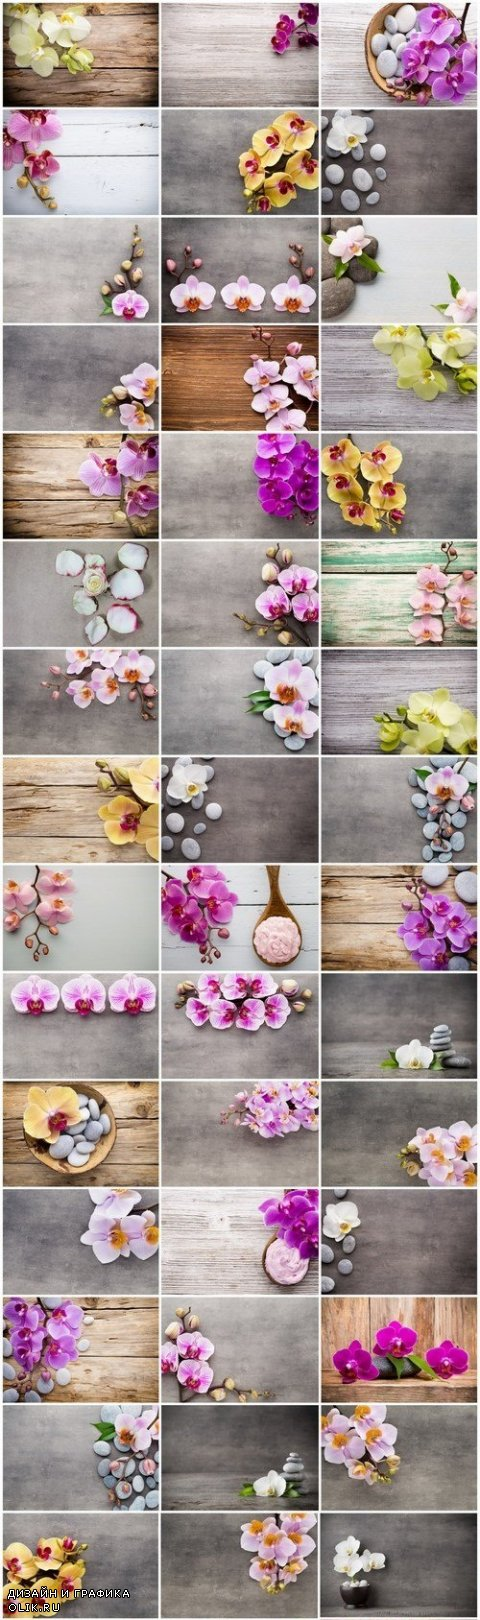 Orchid & SPA Backgrounds - Set of 50xUHQ JPEG Professional Stock Images